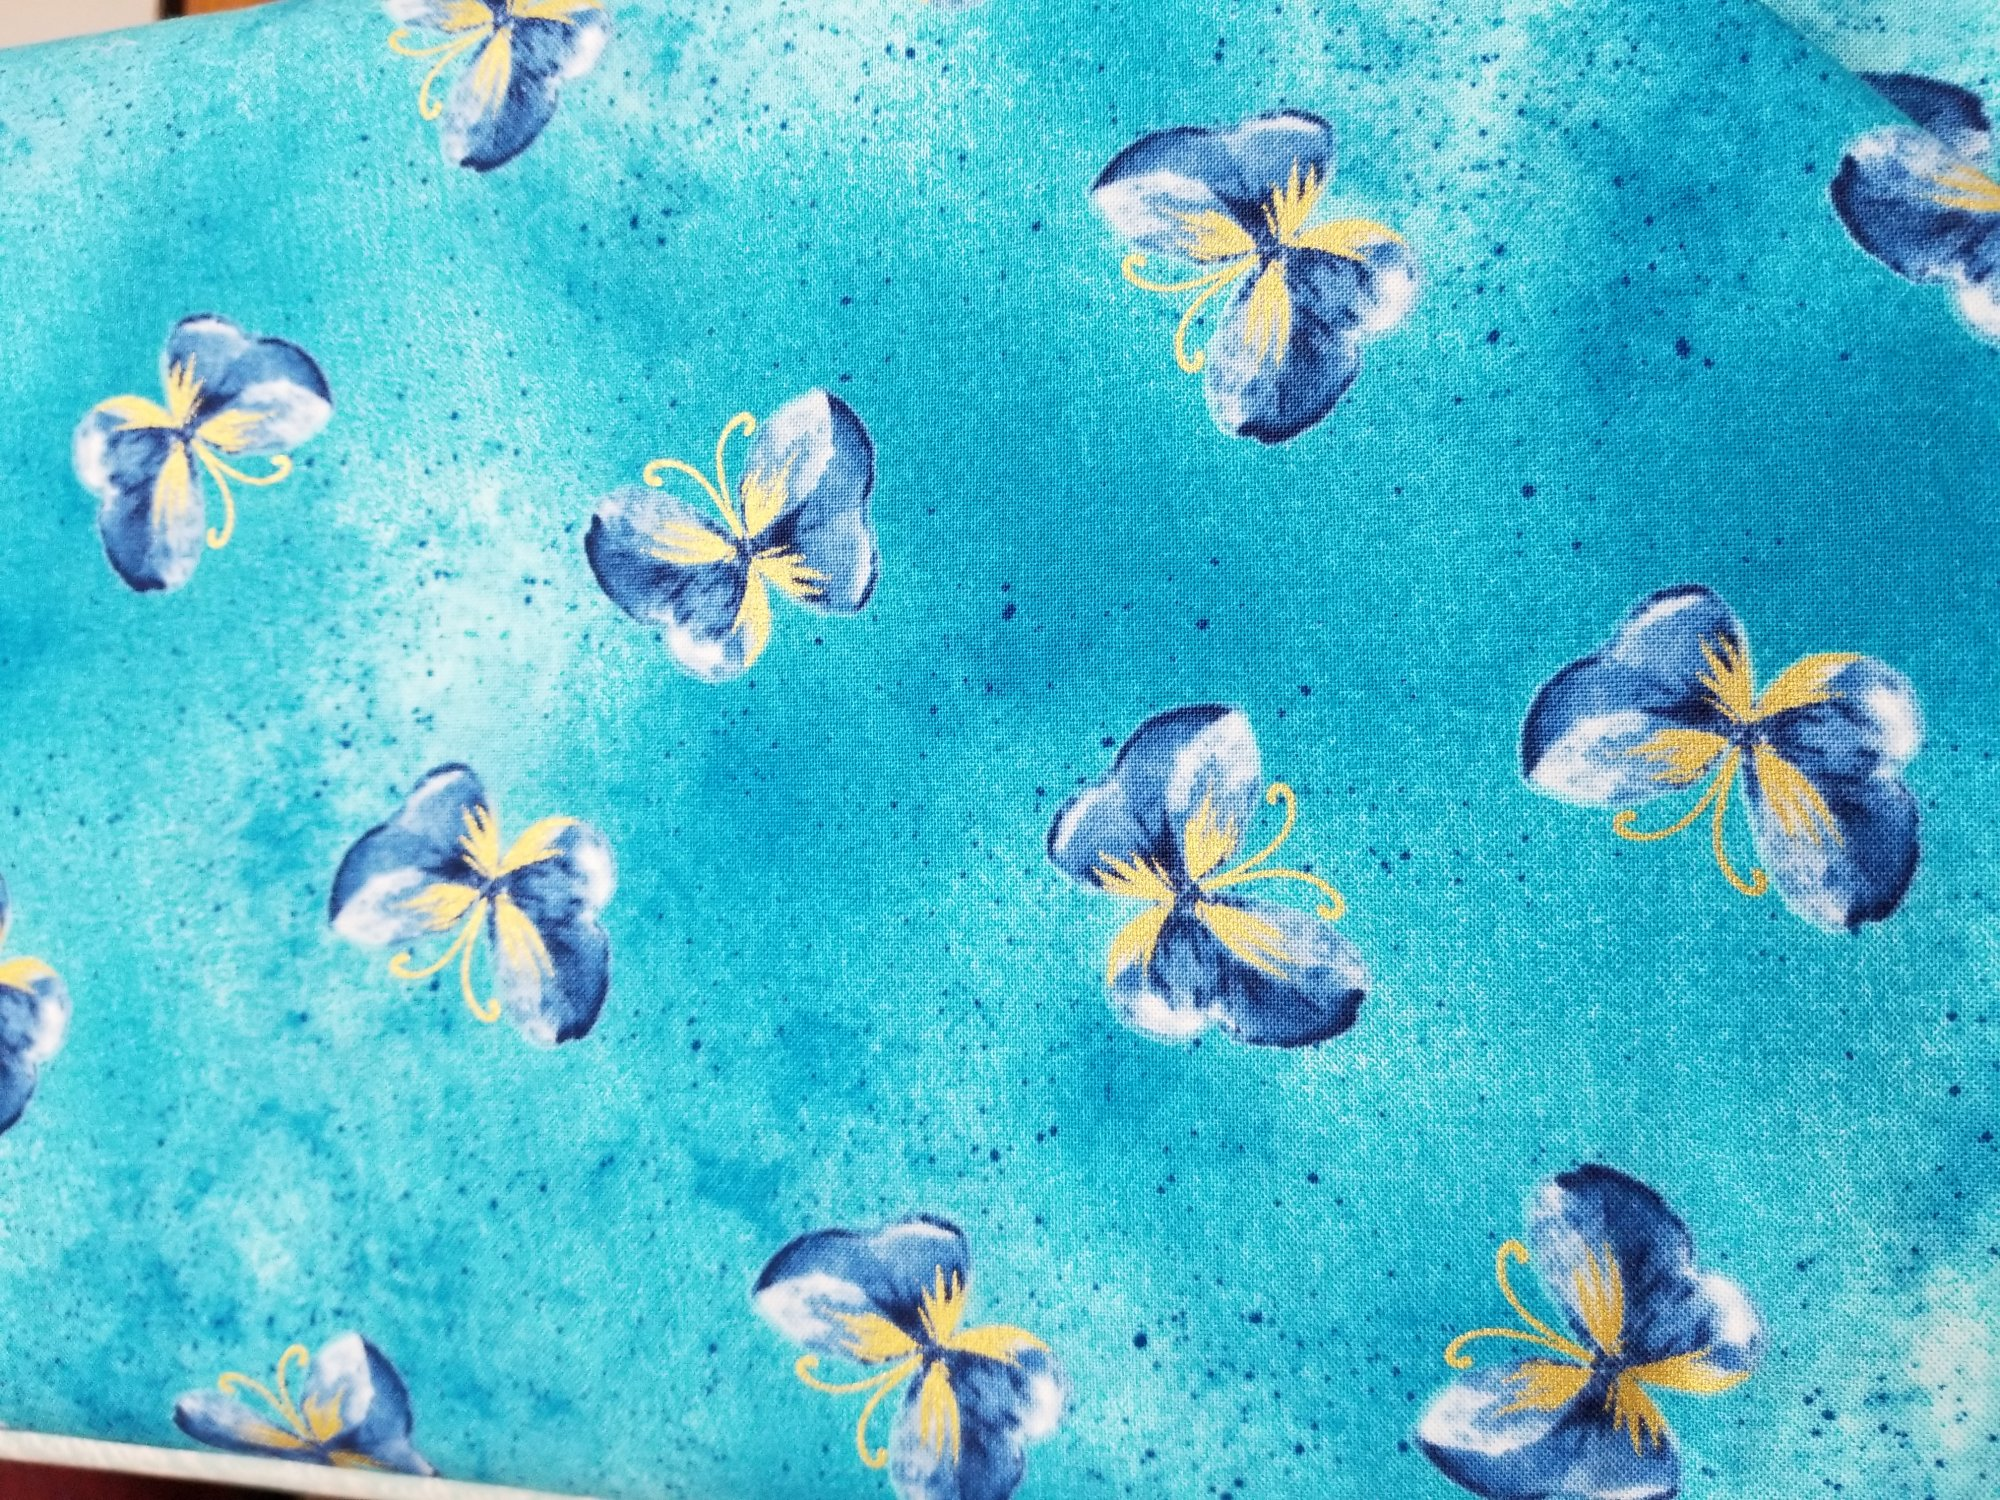 Butterfly Wash Turquoise (Floral Impressions)